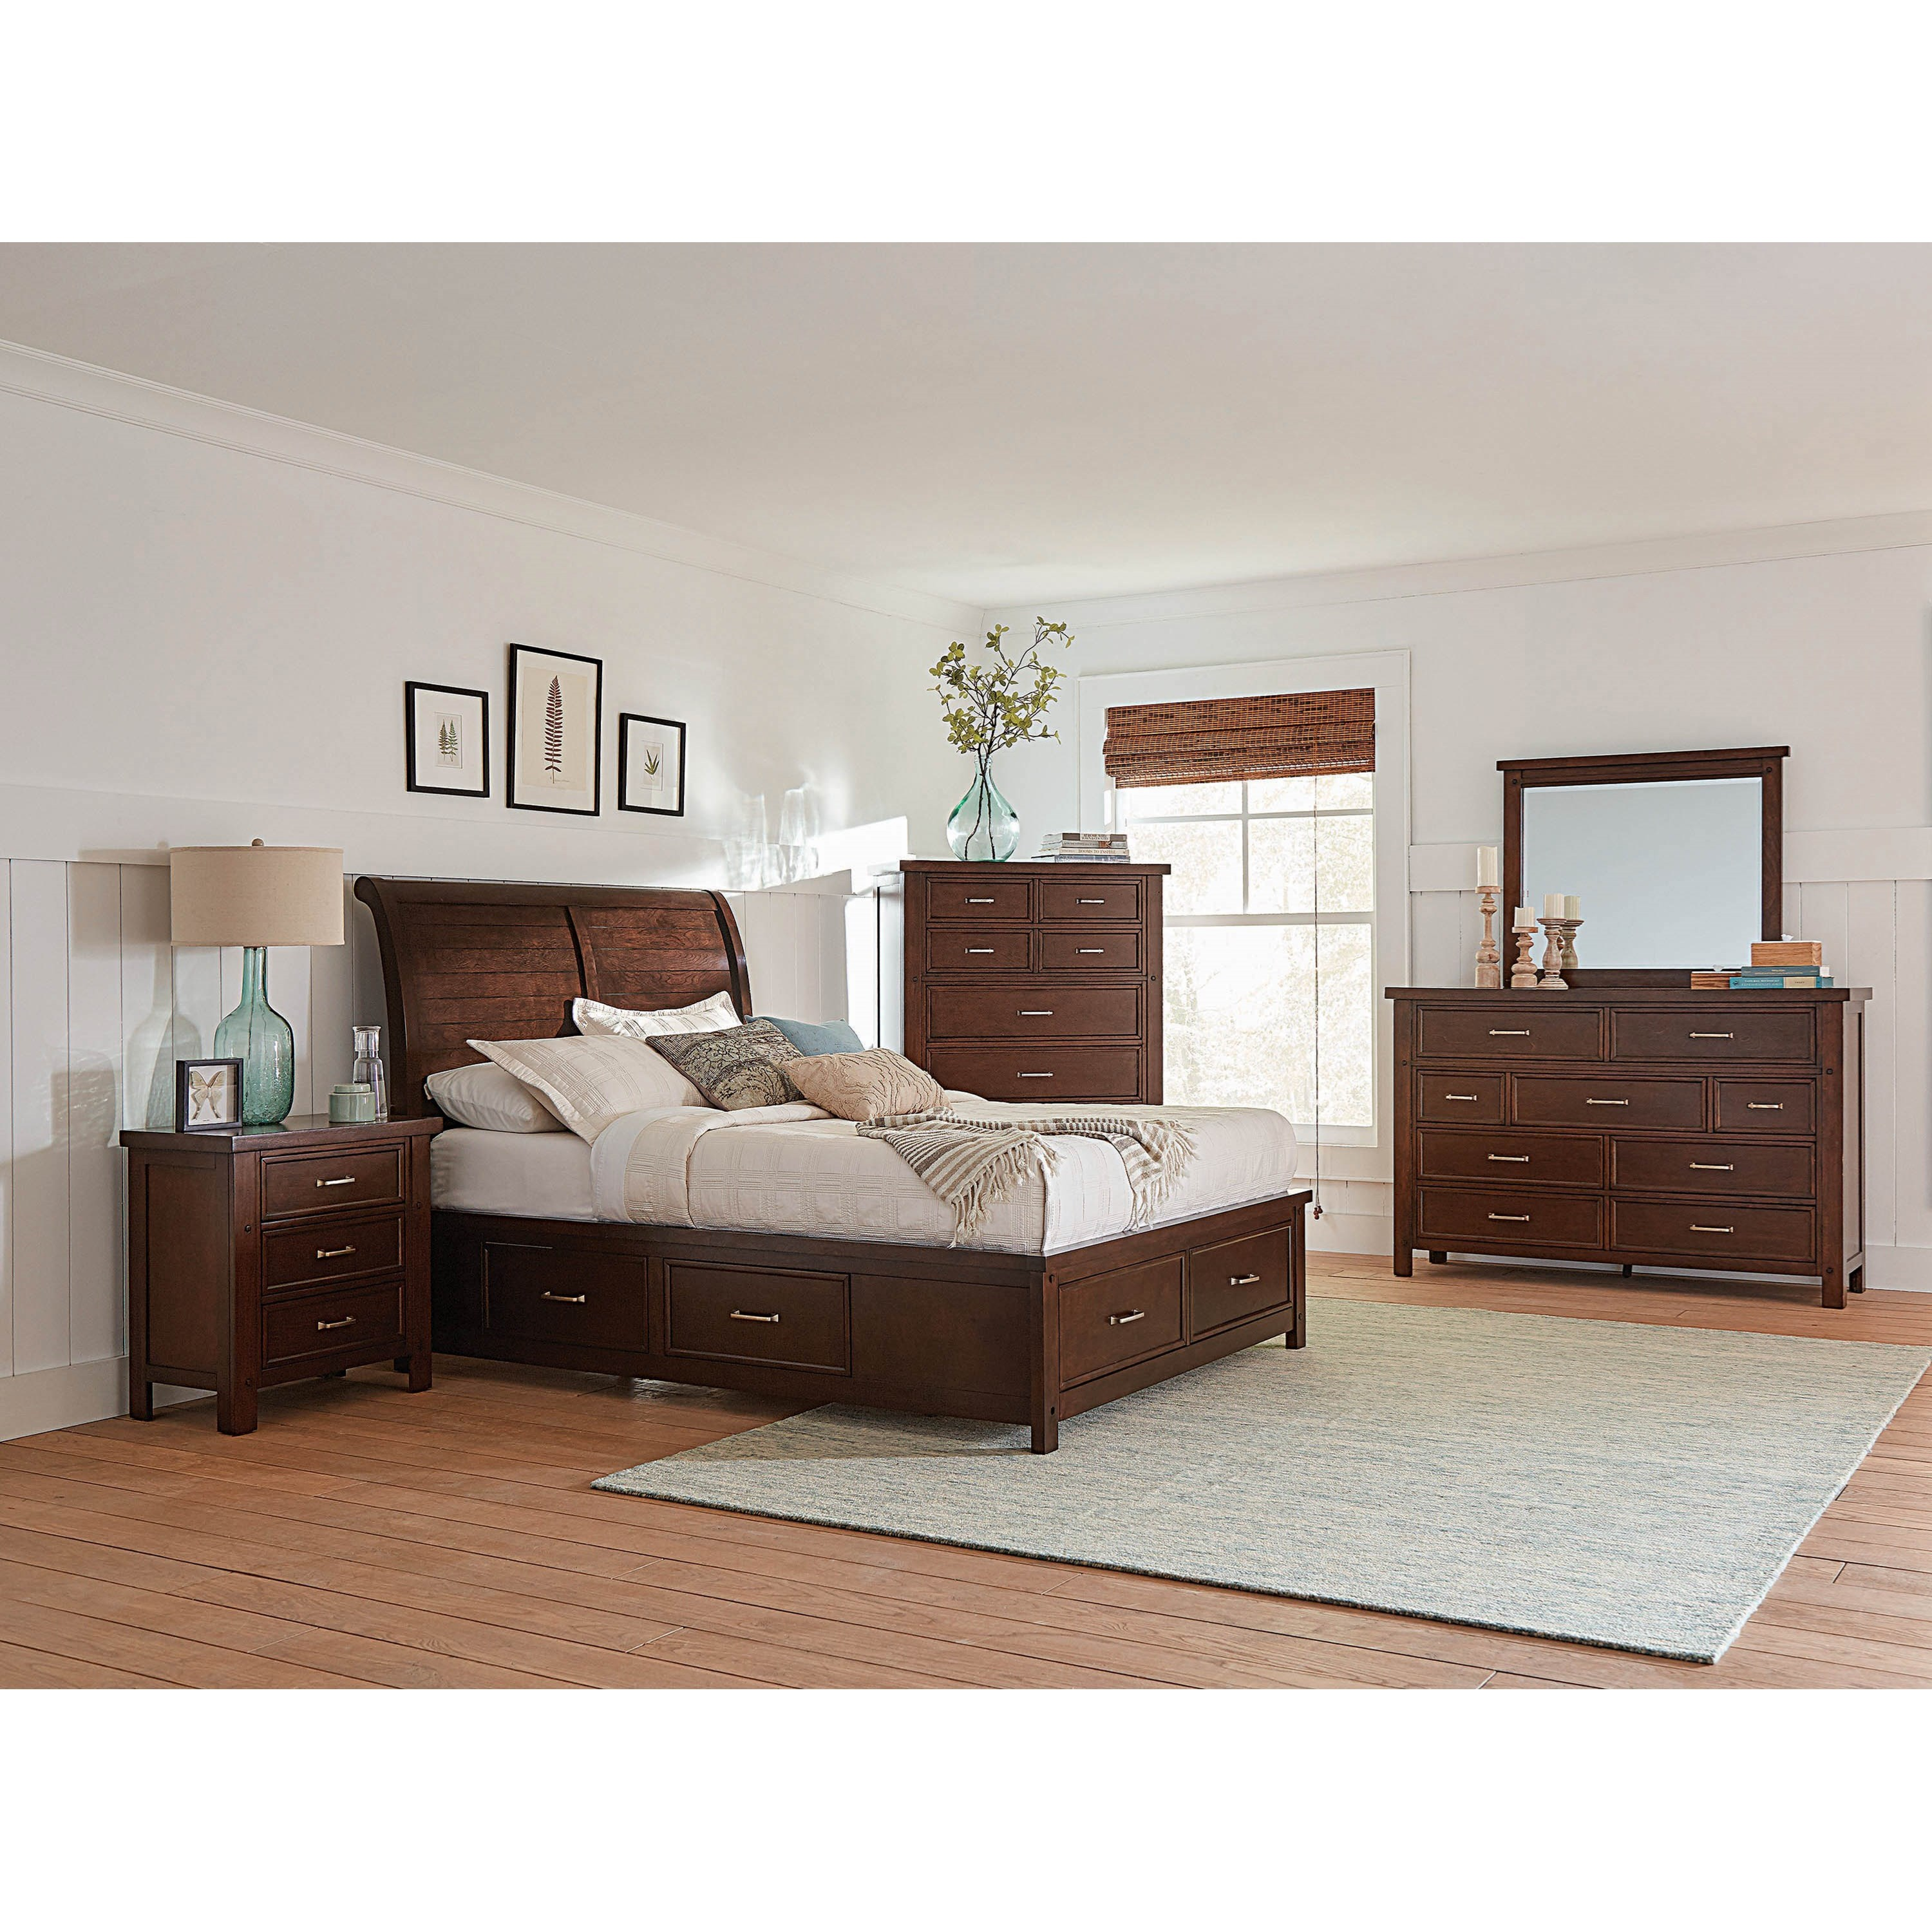 Barstow Queen Bedroom Group by Coaster at Beds N Stuff